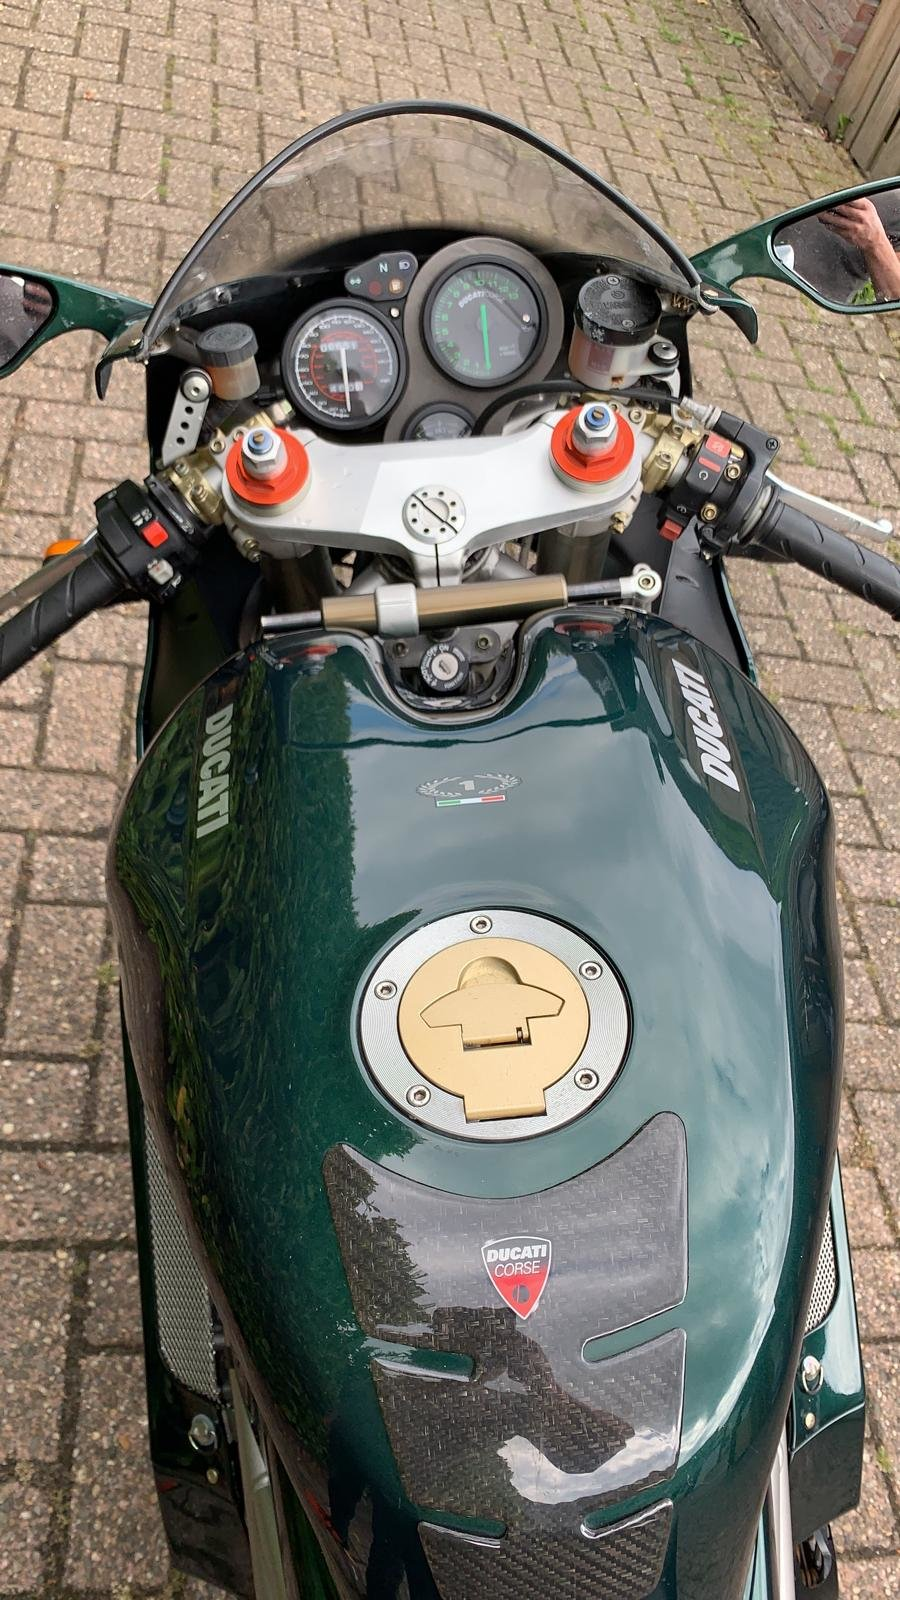 2004 Ducati 998 Matrix reloaded as new  For Sale (picture 2 of 6)